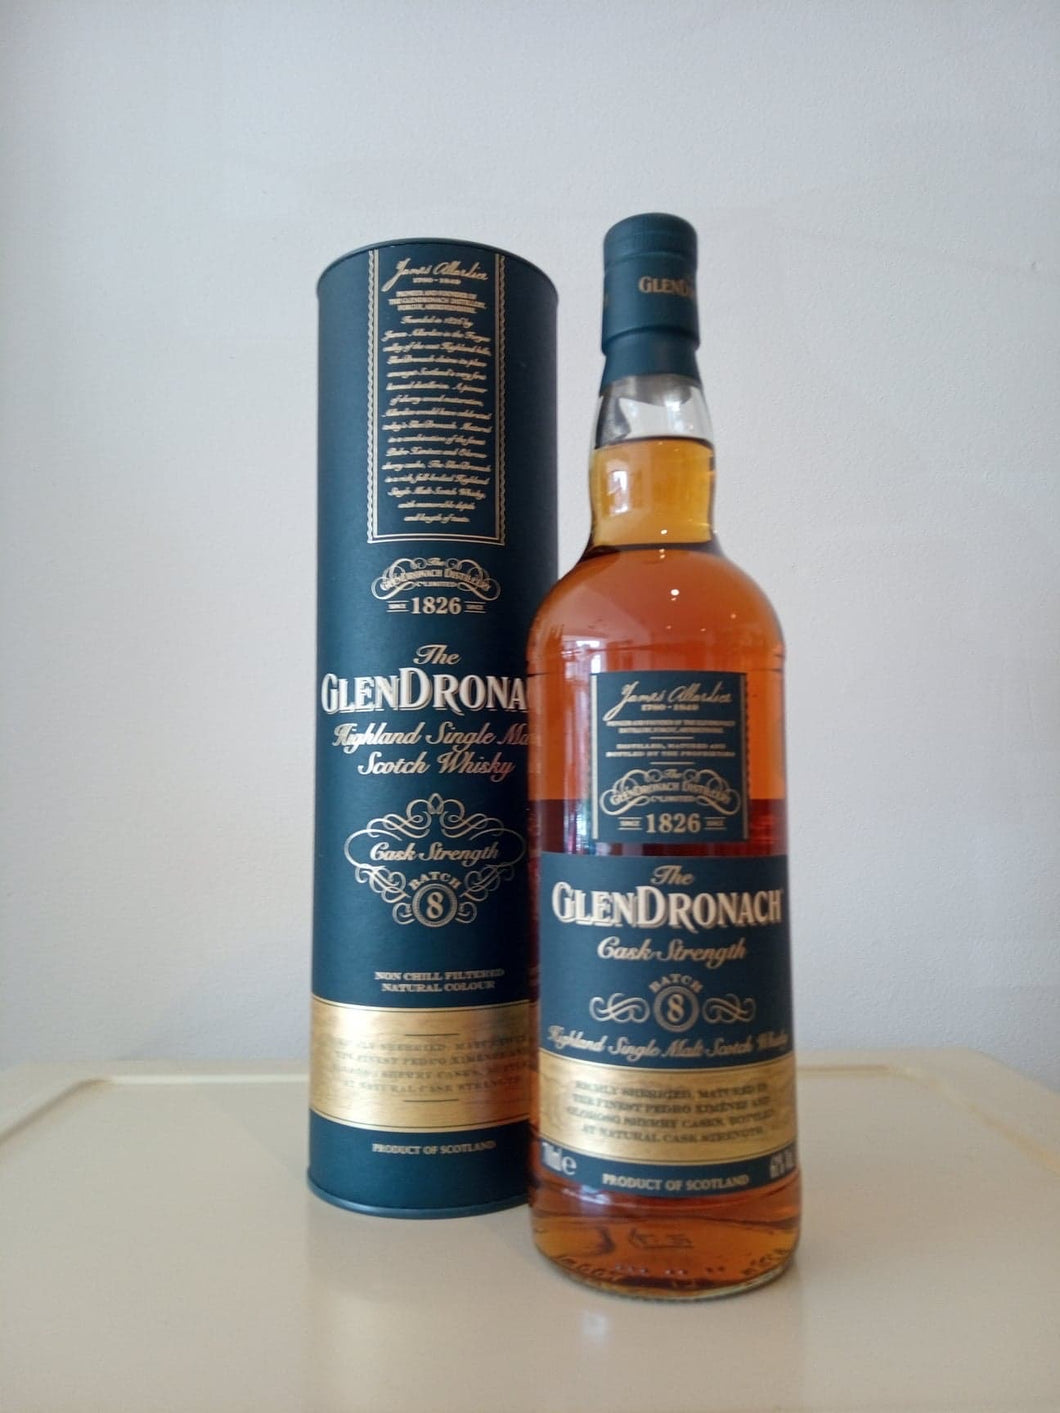 GlenDronach Cask Strength Batch 8 70cl